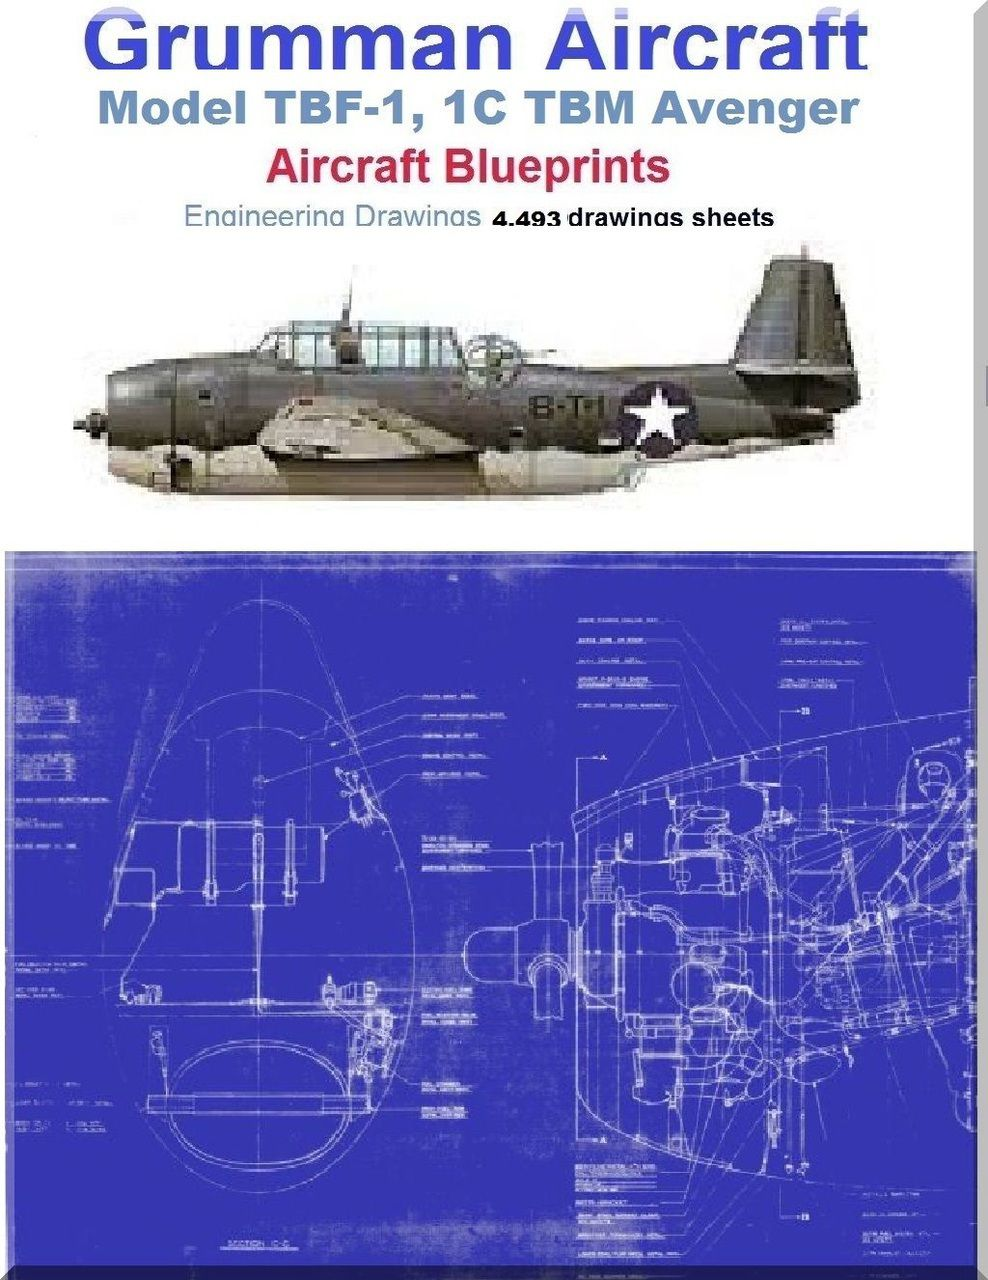 Grumman TBF-1, 1C TBM Avenger Aircraft Blueprints Engineering Drawings -  DVDs - Aircraft Reports - Aircraft Helicopter Engines Propellers Manuals  Blueprints ...